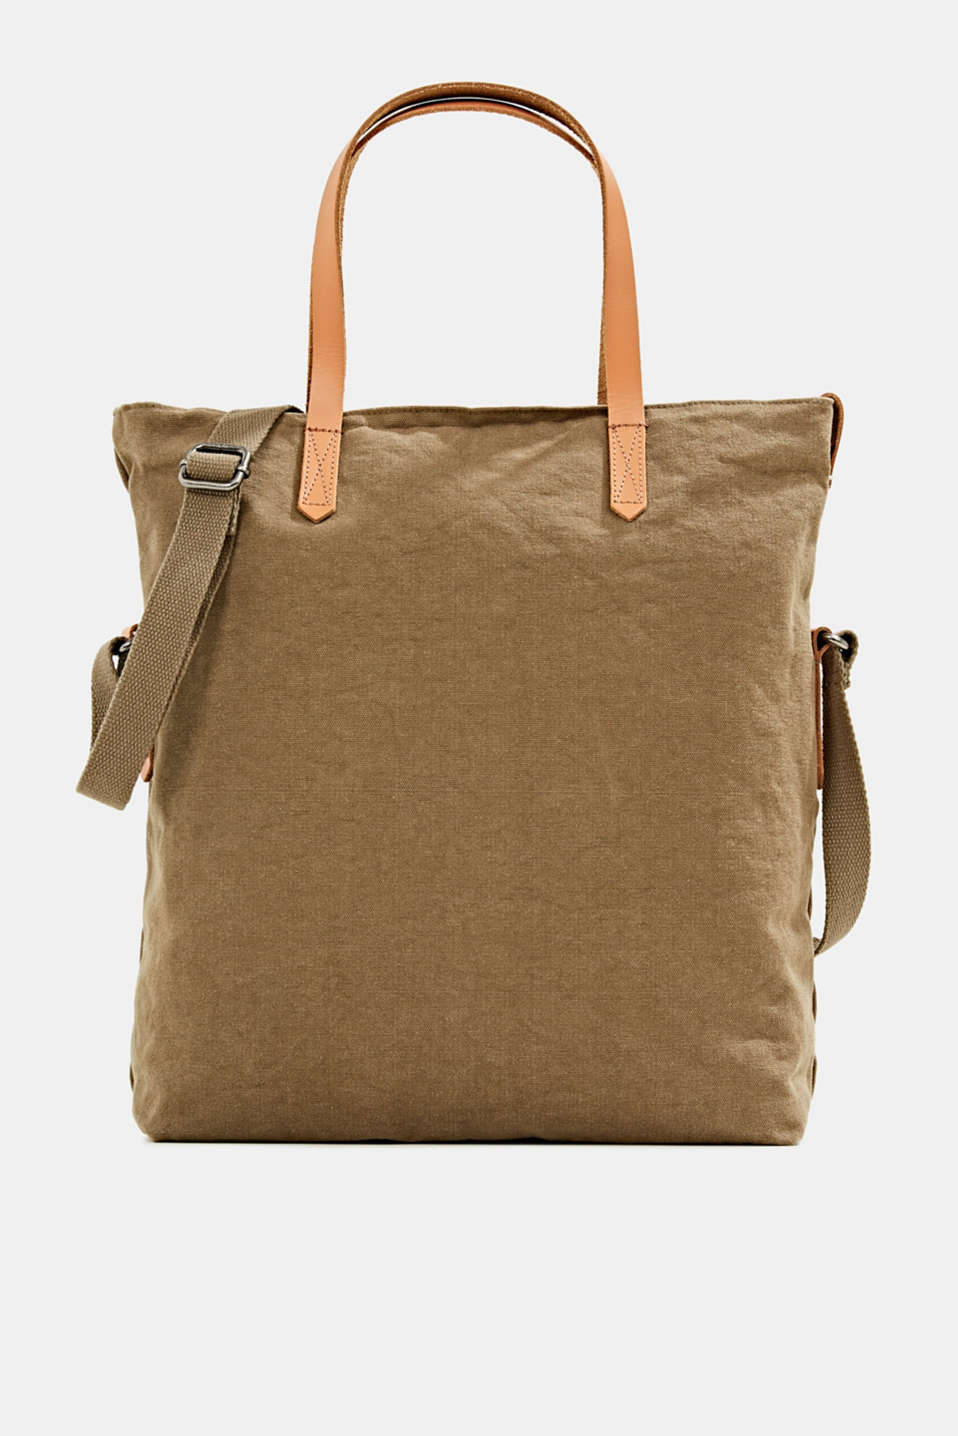 Esprit - Adjustable canvas tote with leather details